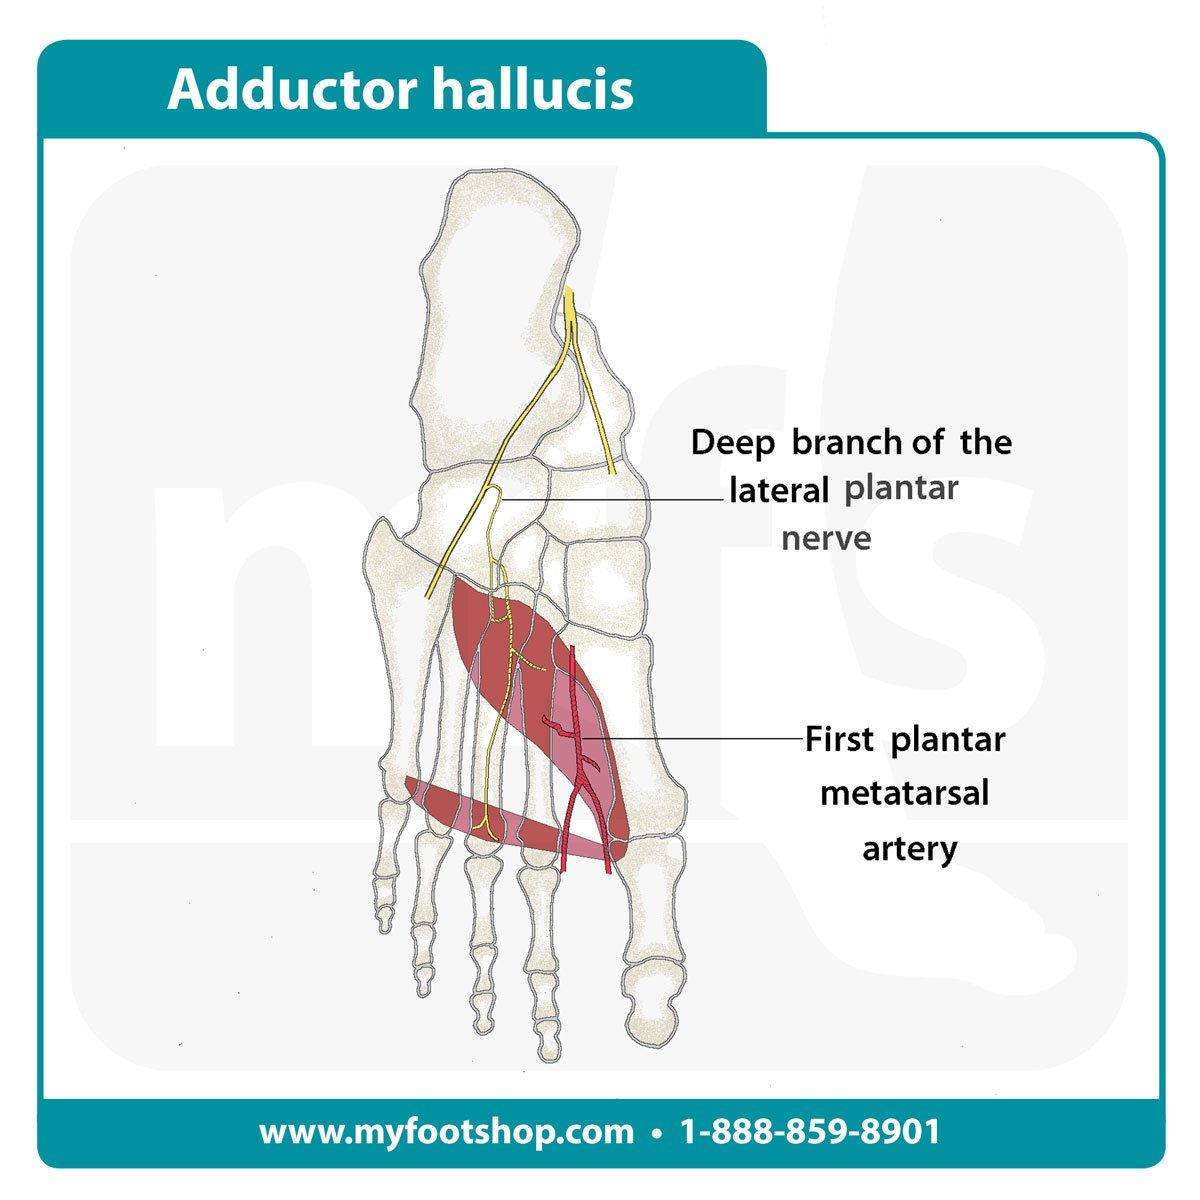 image of the adductor hallucis muscle